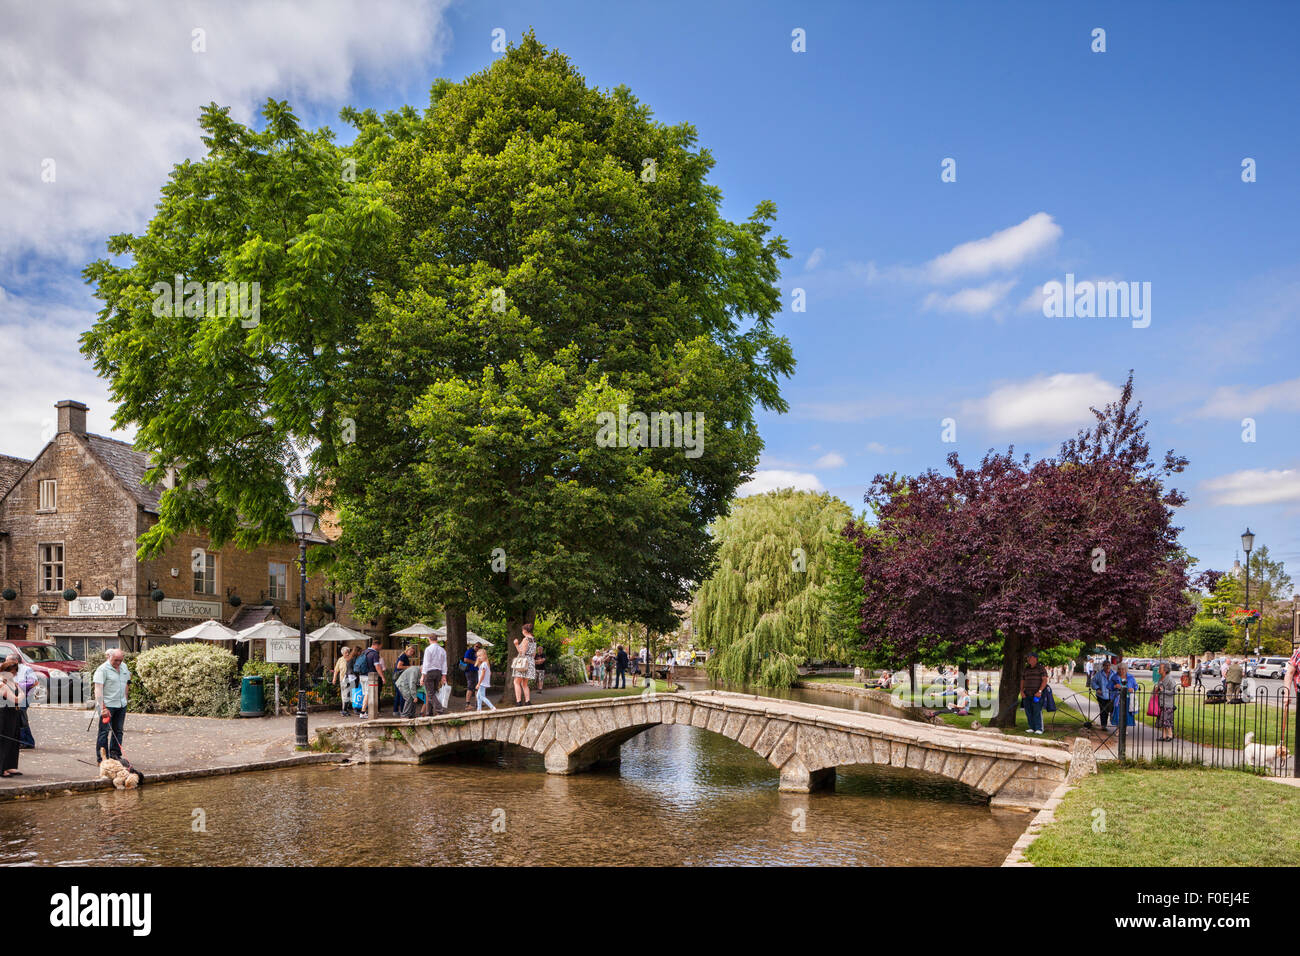 A summer afternoon in the Cotswold village of Bourton-on-the-Water, Gloucestershire, England. - Stock Image